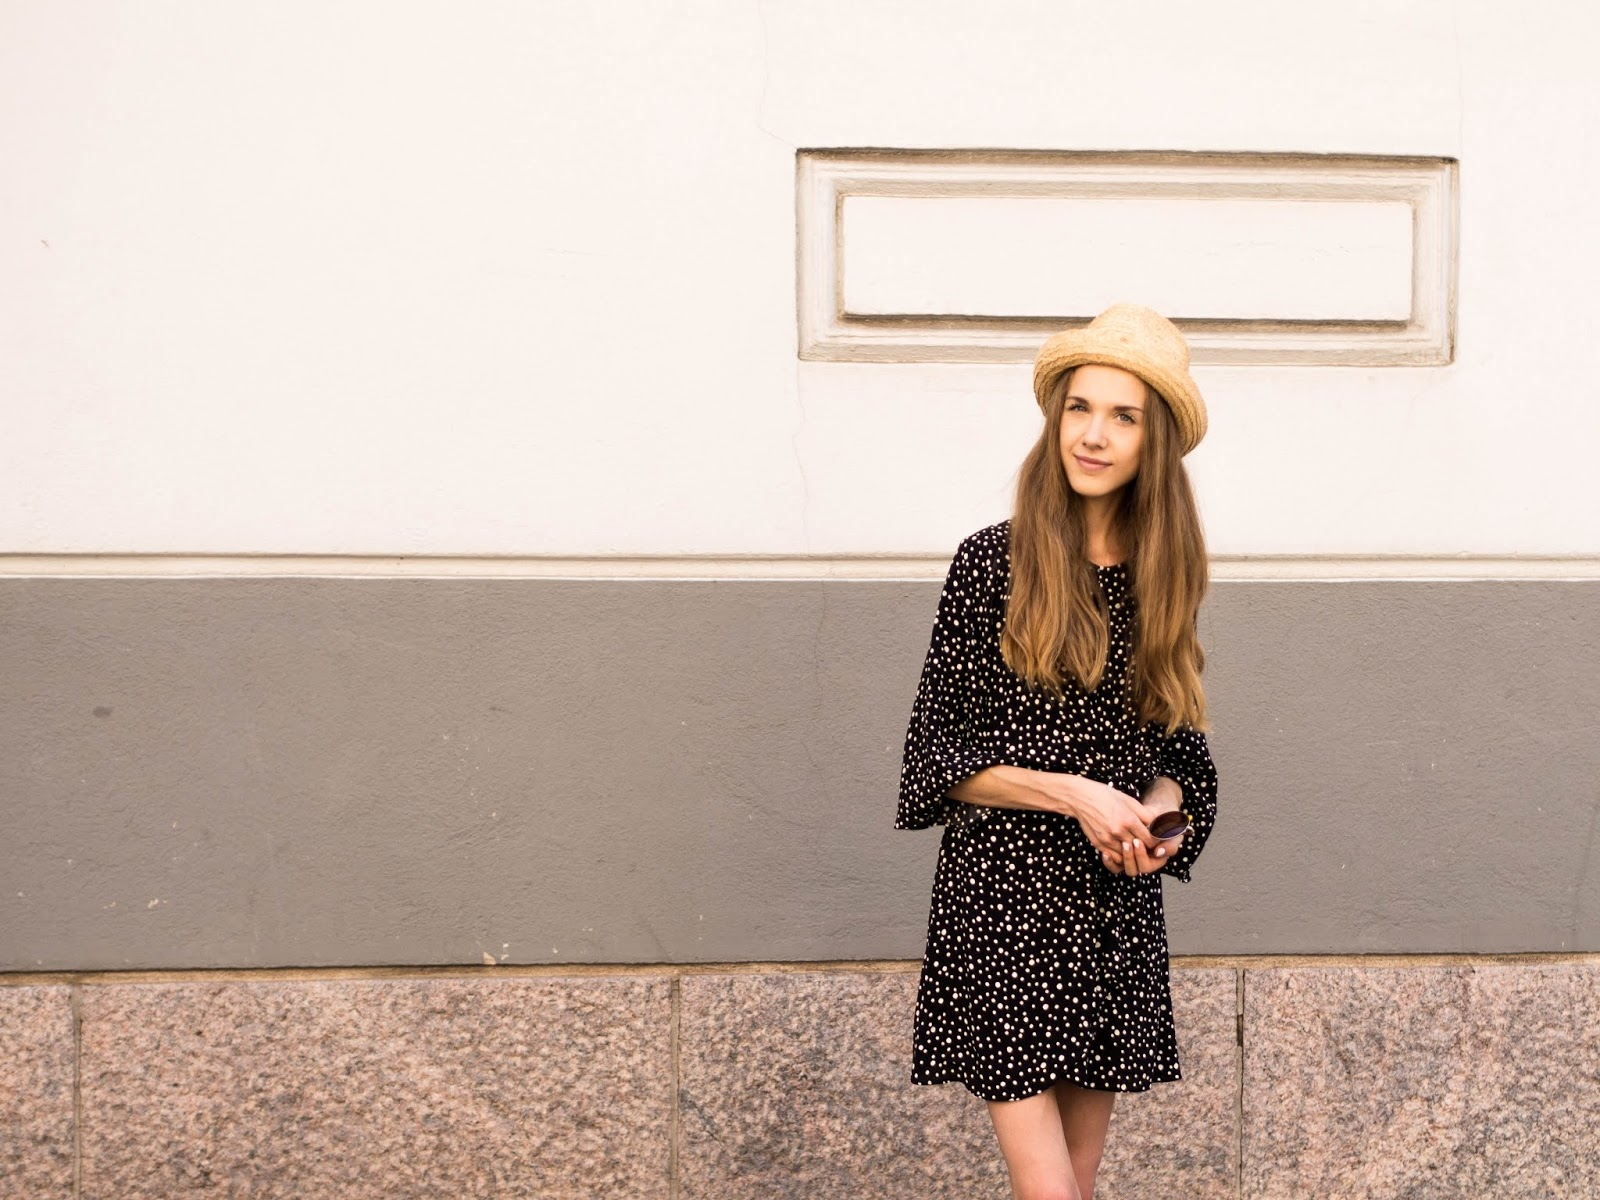 fashion-blogger-summer-outfit-polka-dot-dress